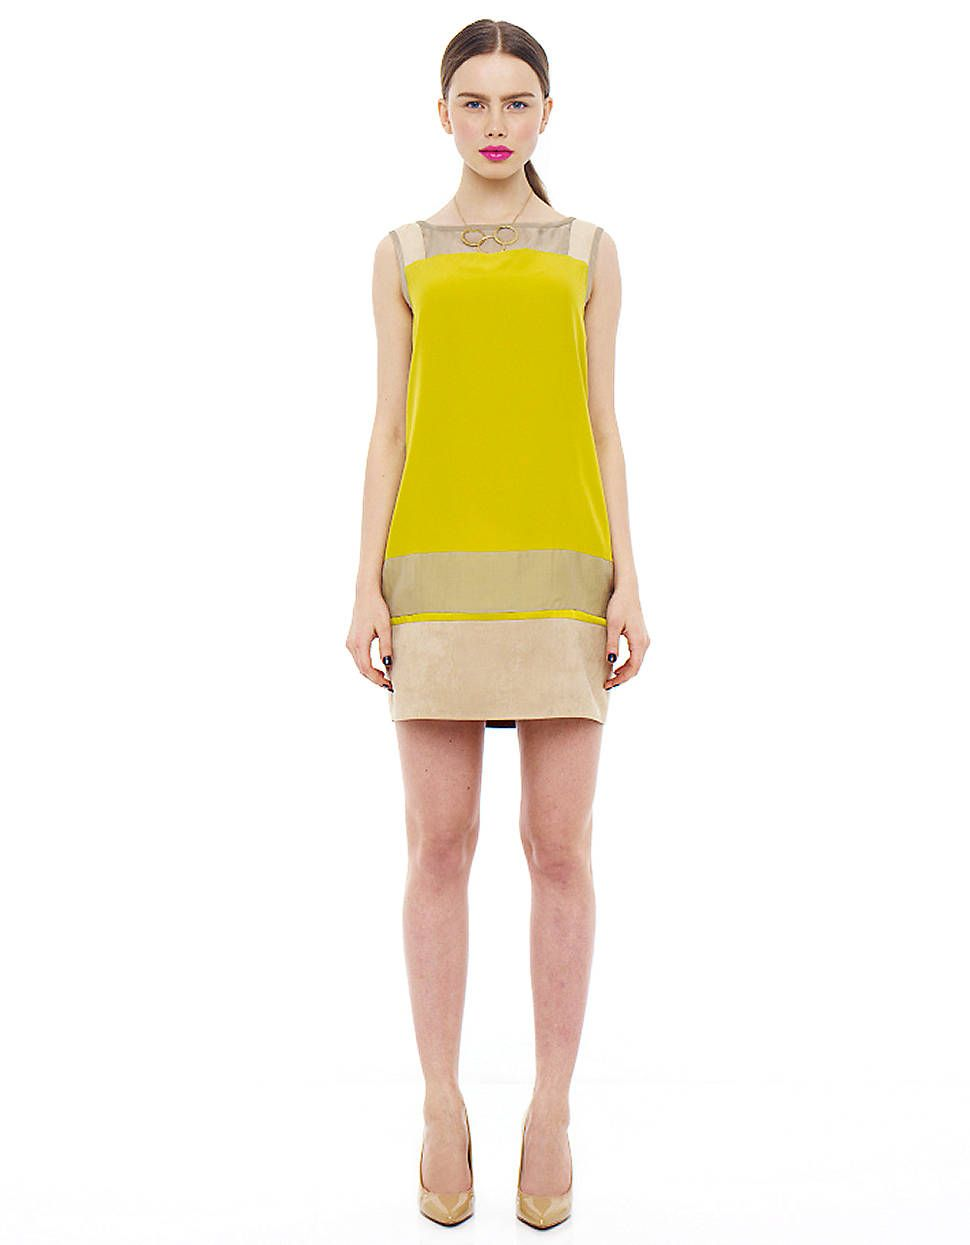 fddb358988c7b6 Michelle s Project Runway dress - Lord   Taylor challenge JS COLLECTIONS  Chartreuse Shift Dress